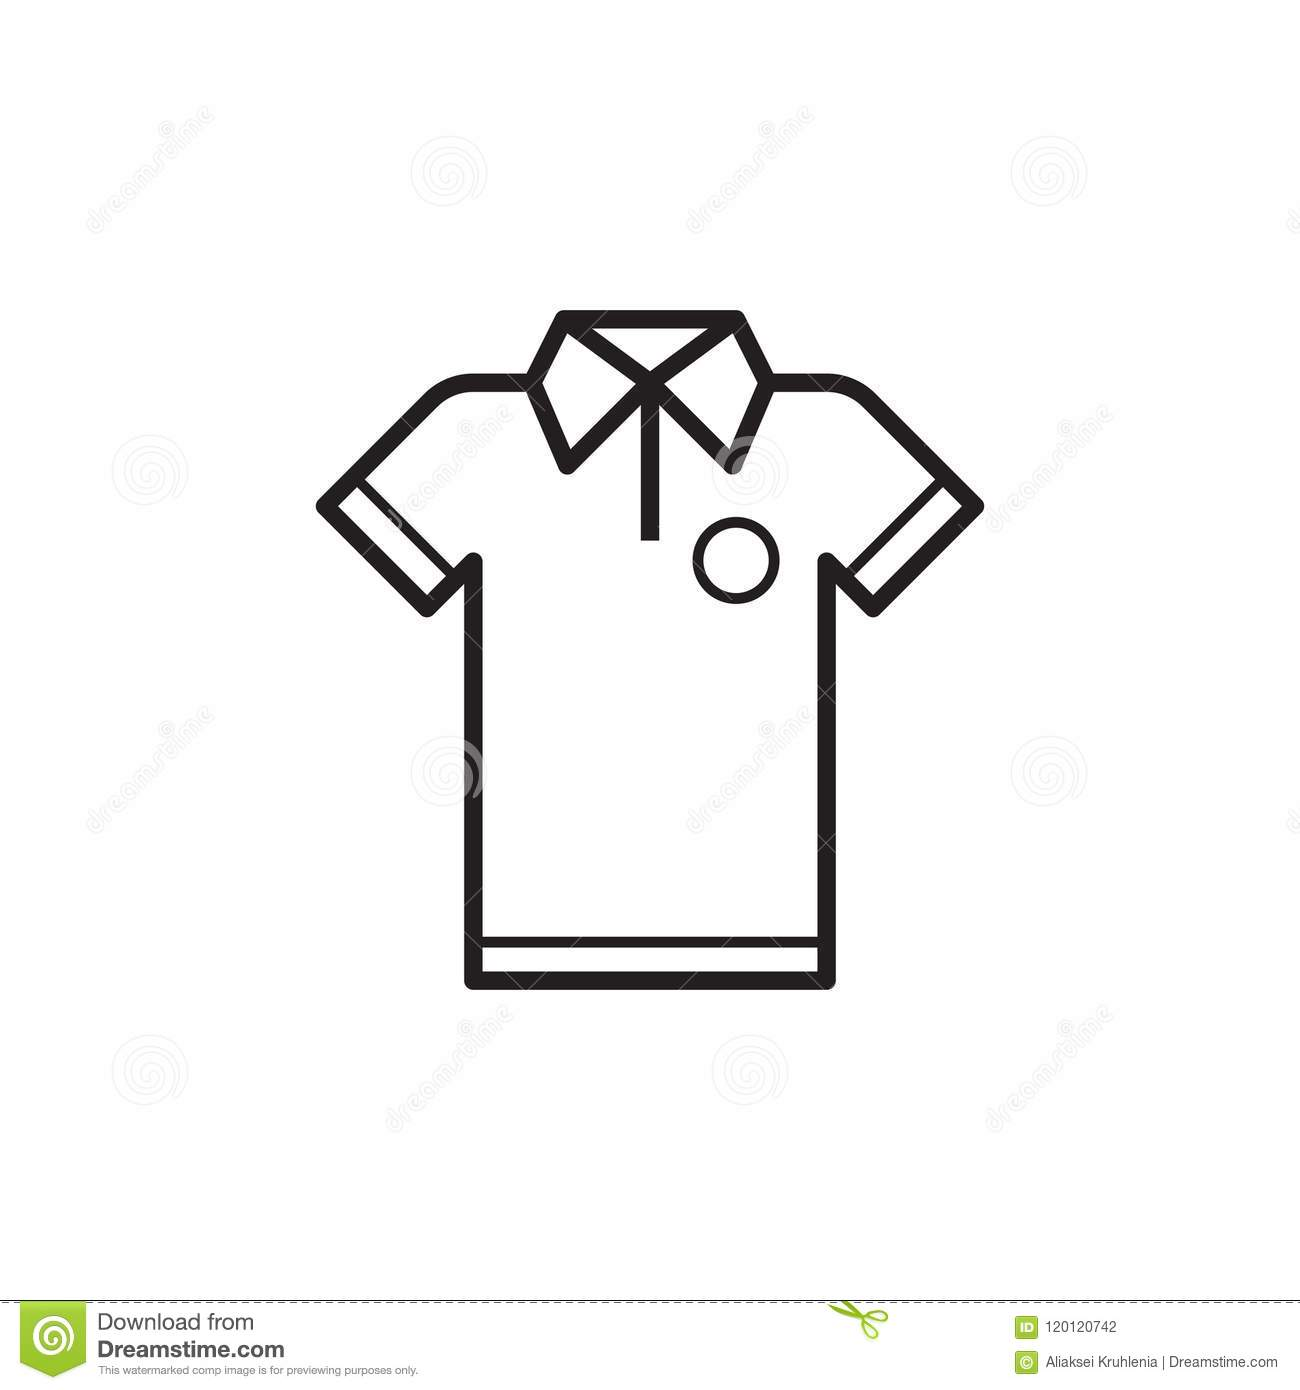 line t shirt icon stock vector illustration of female 120120742 https www dreamstime com line t shirt icon outlined t shirt icon isolated white background sport man shirt line art design image120120742